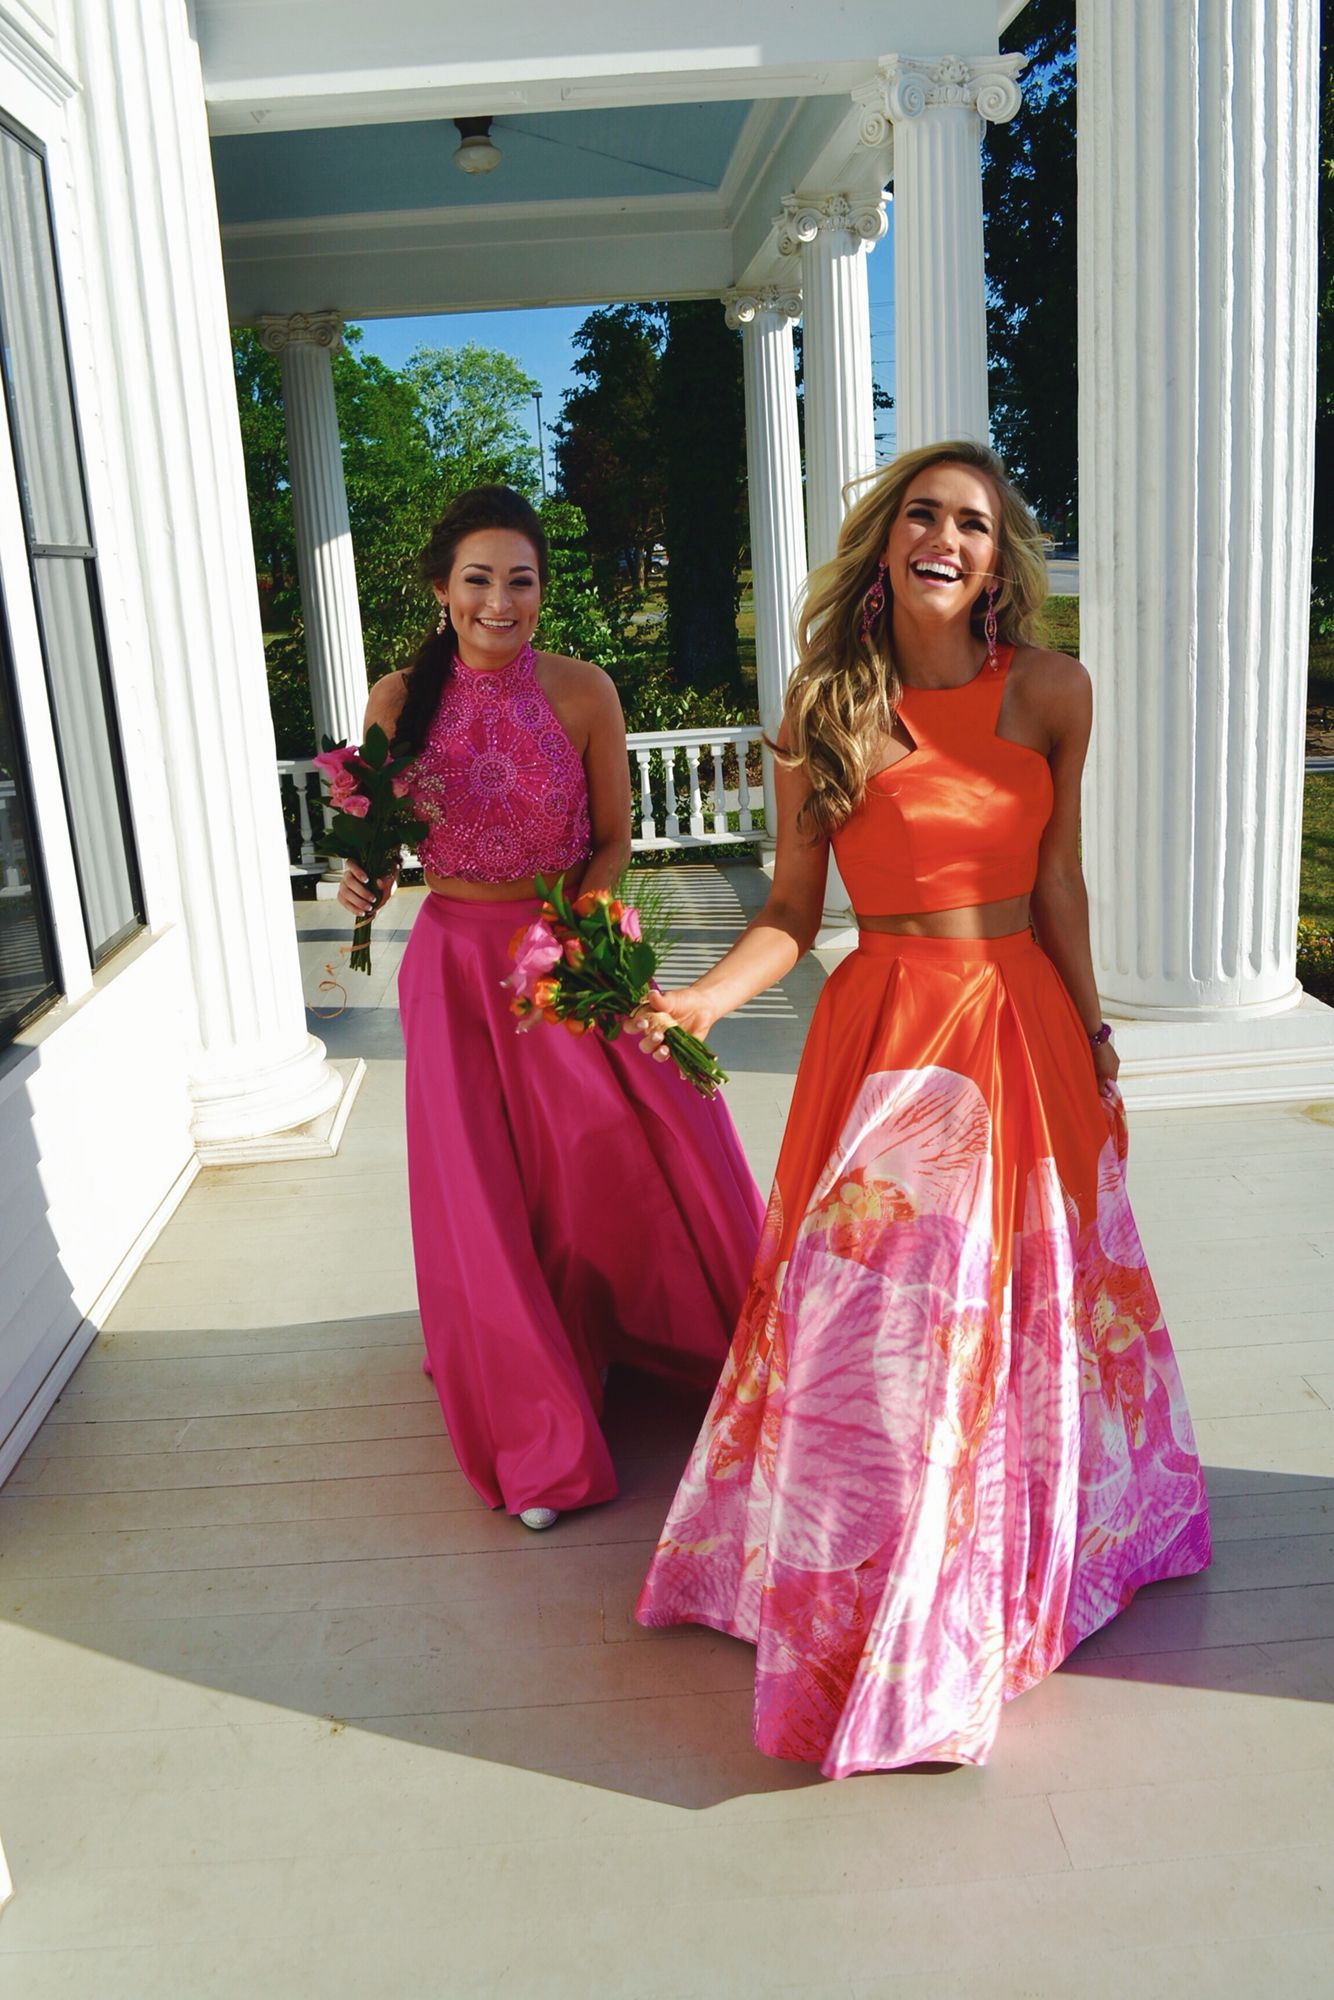 best loved shopping modern design Best friend Prom Pictures | Best friends | Prom, Prom ...